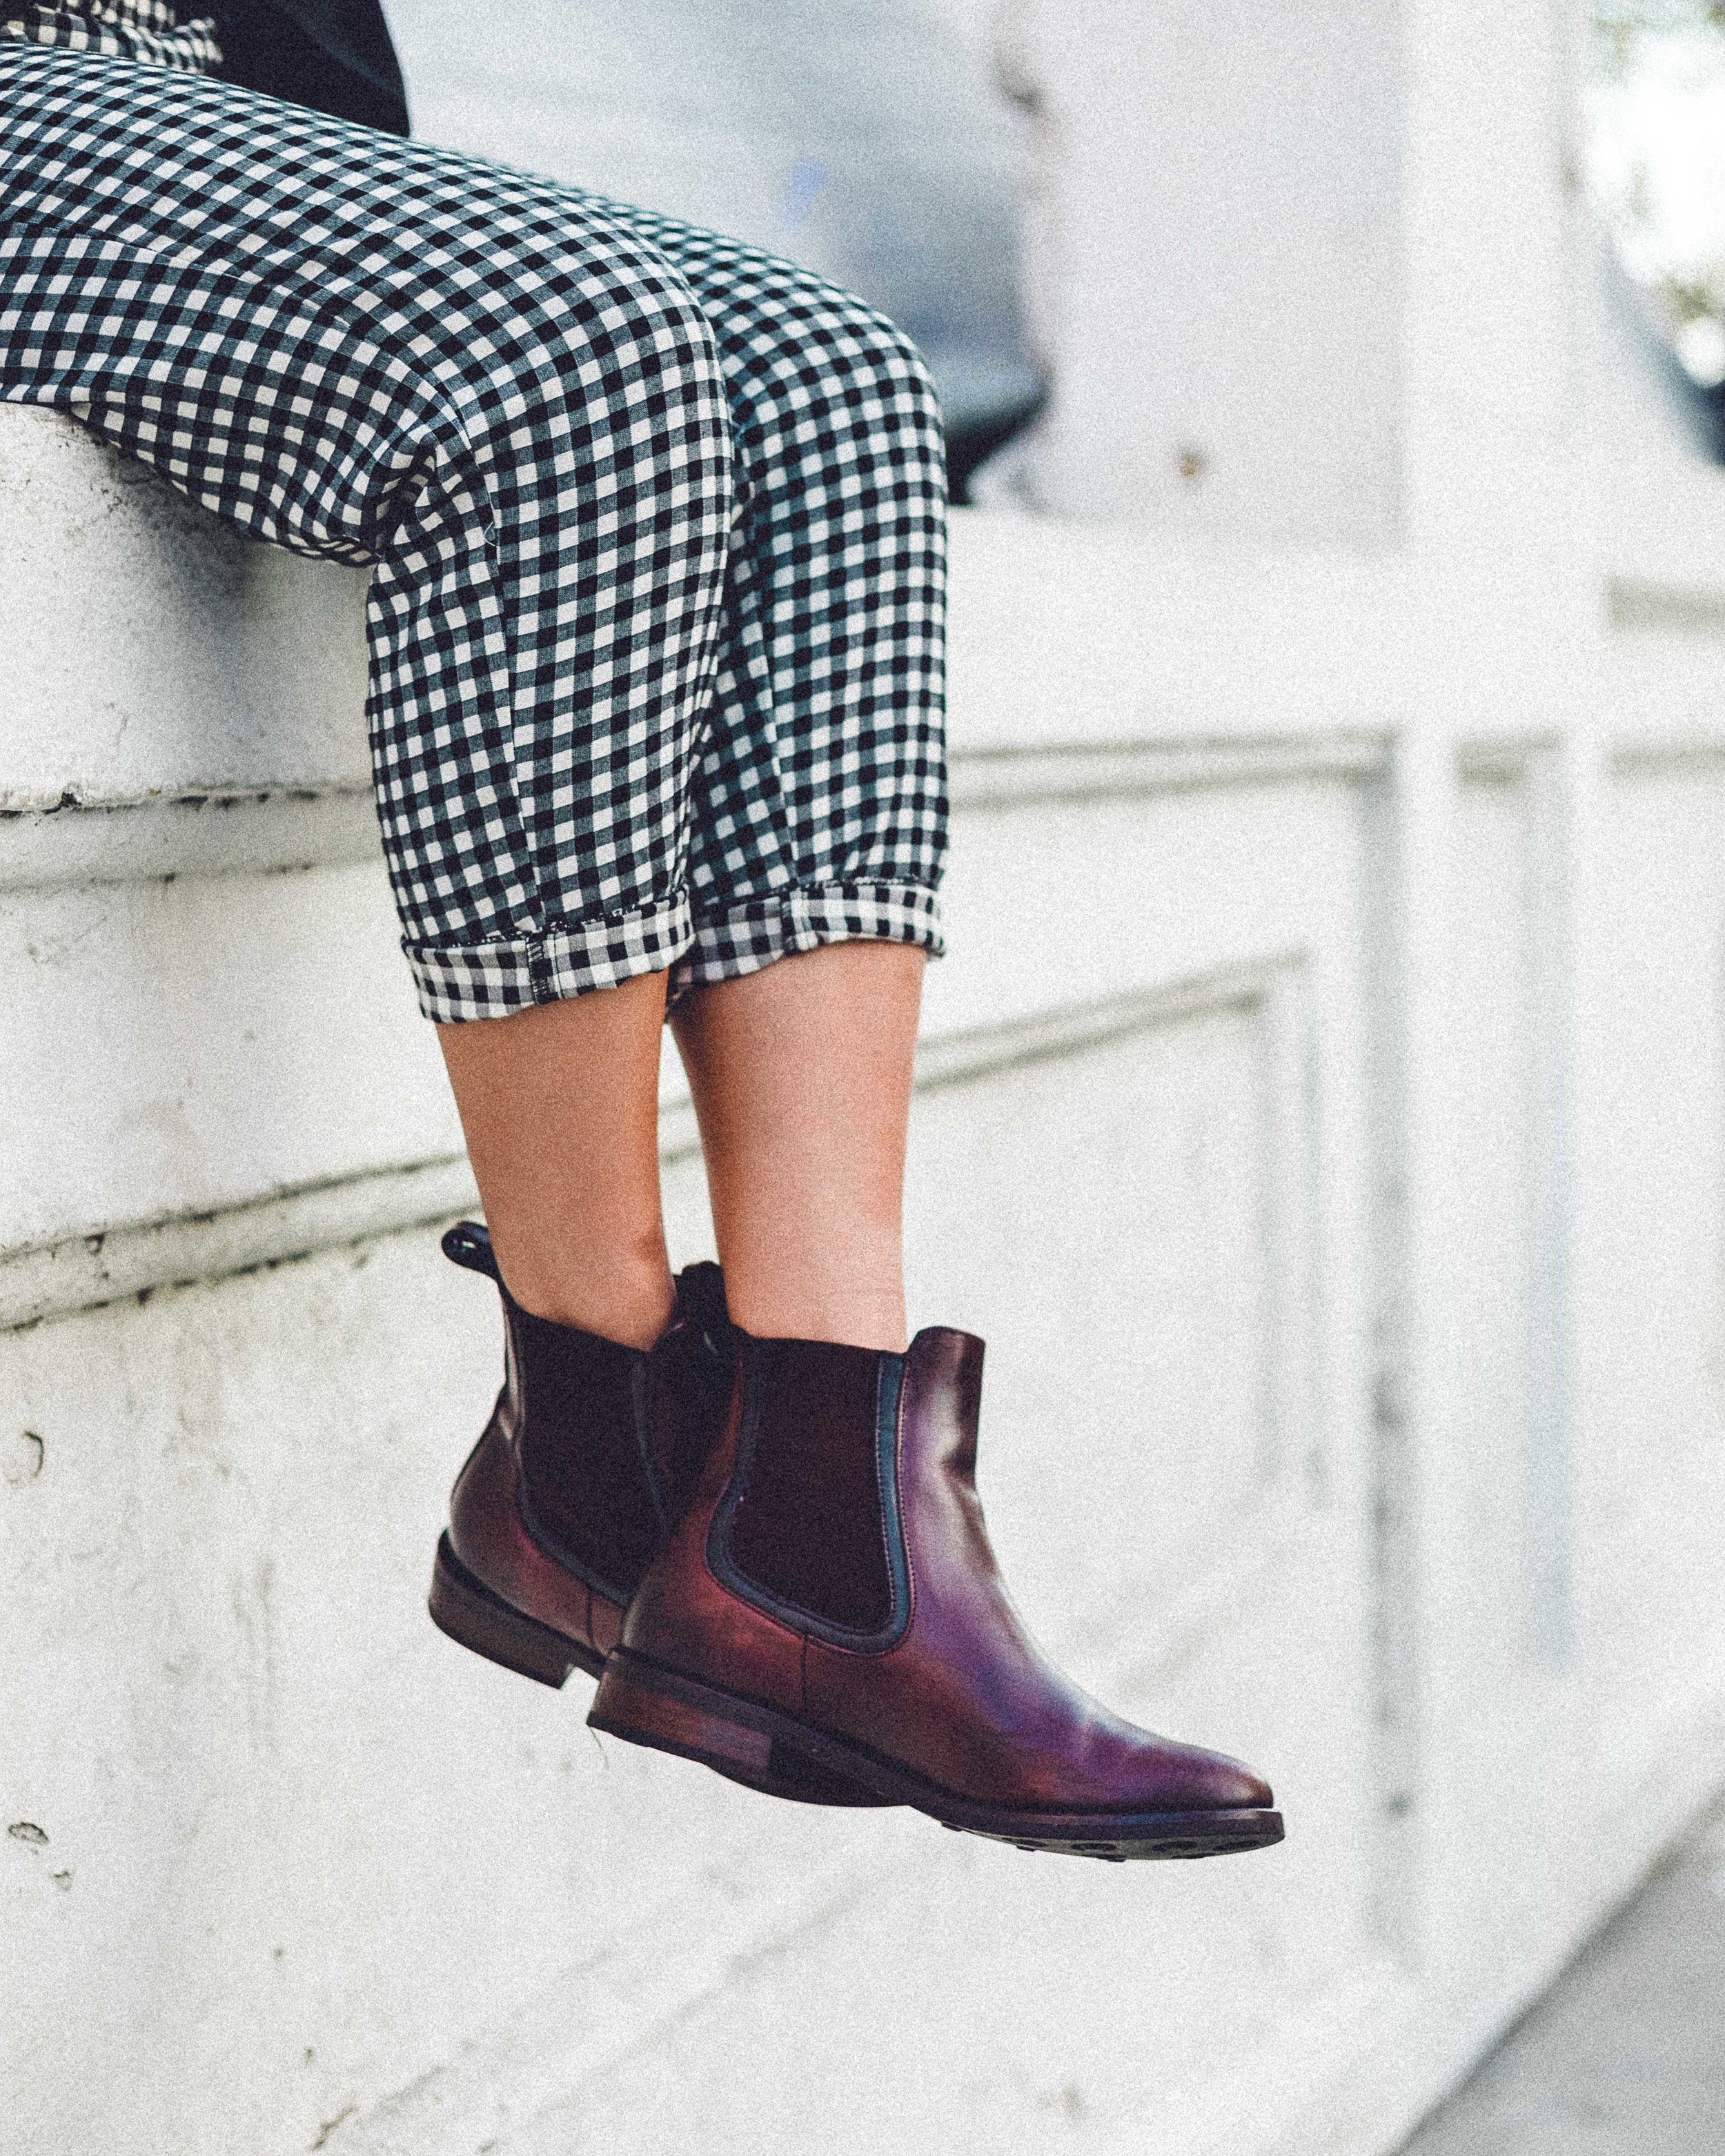 Rachel Off Duty: 4 Ankle Boots for Winter - Chelsea Boots